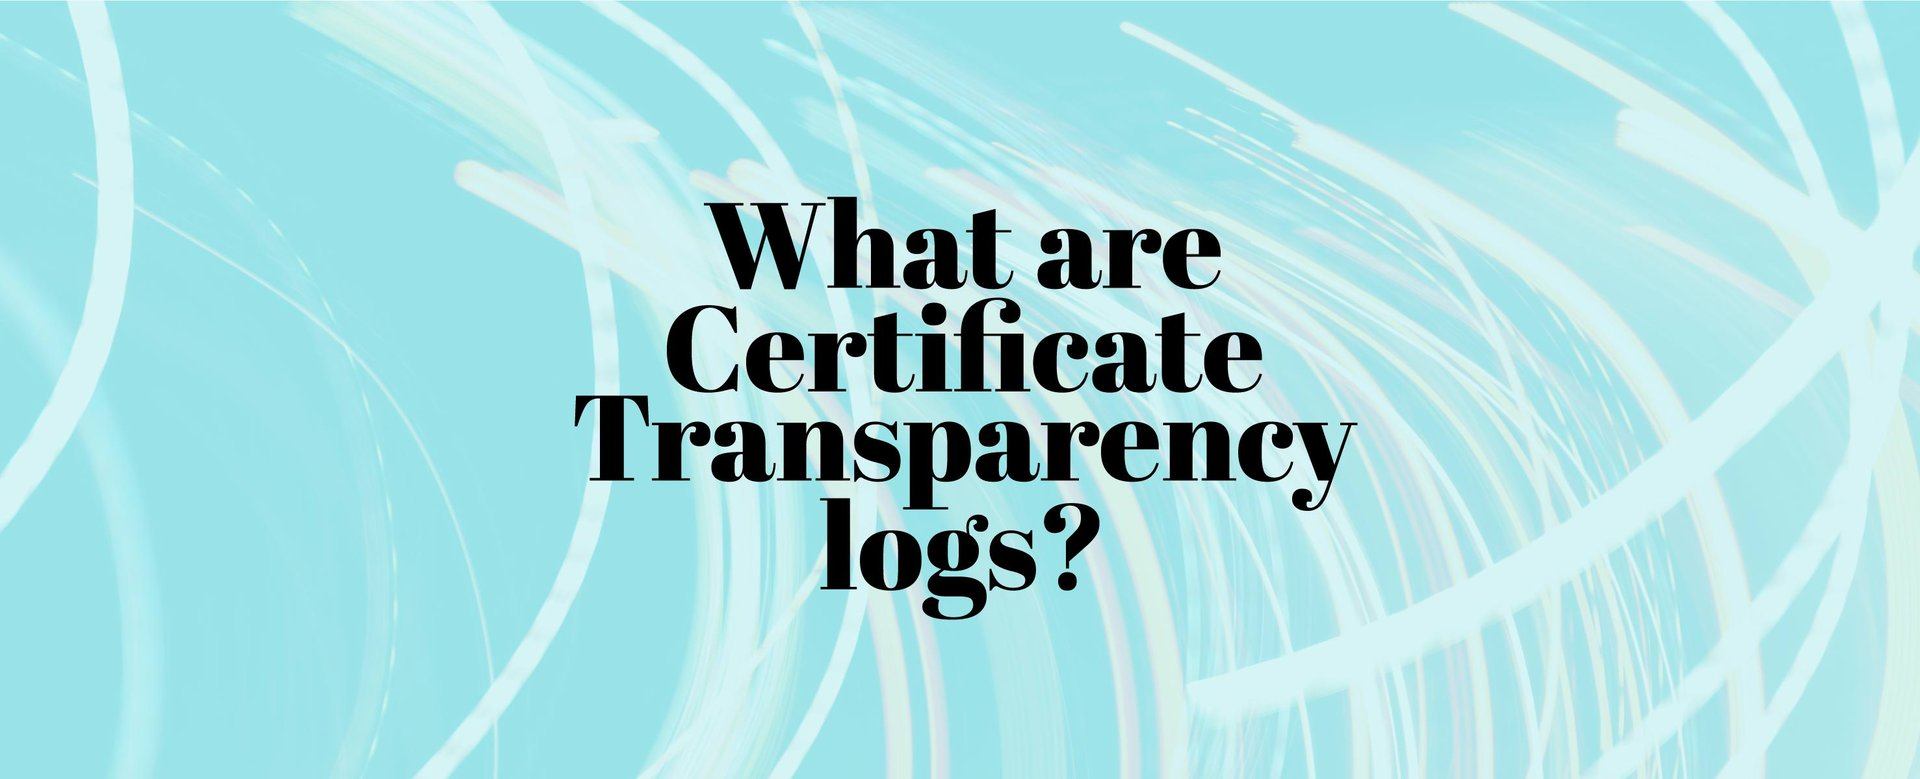 What Are Certificate Transparency Logs?